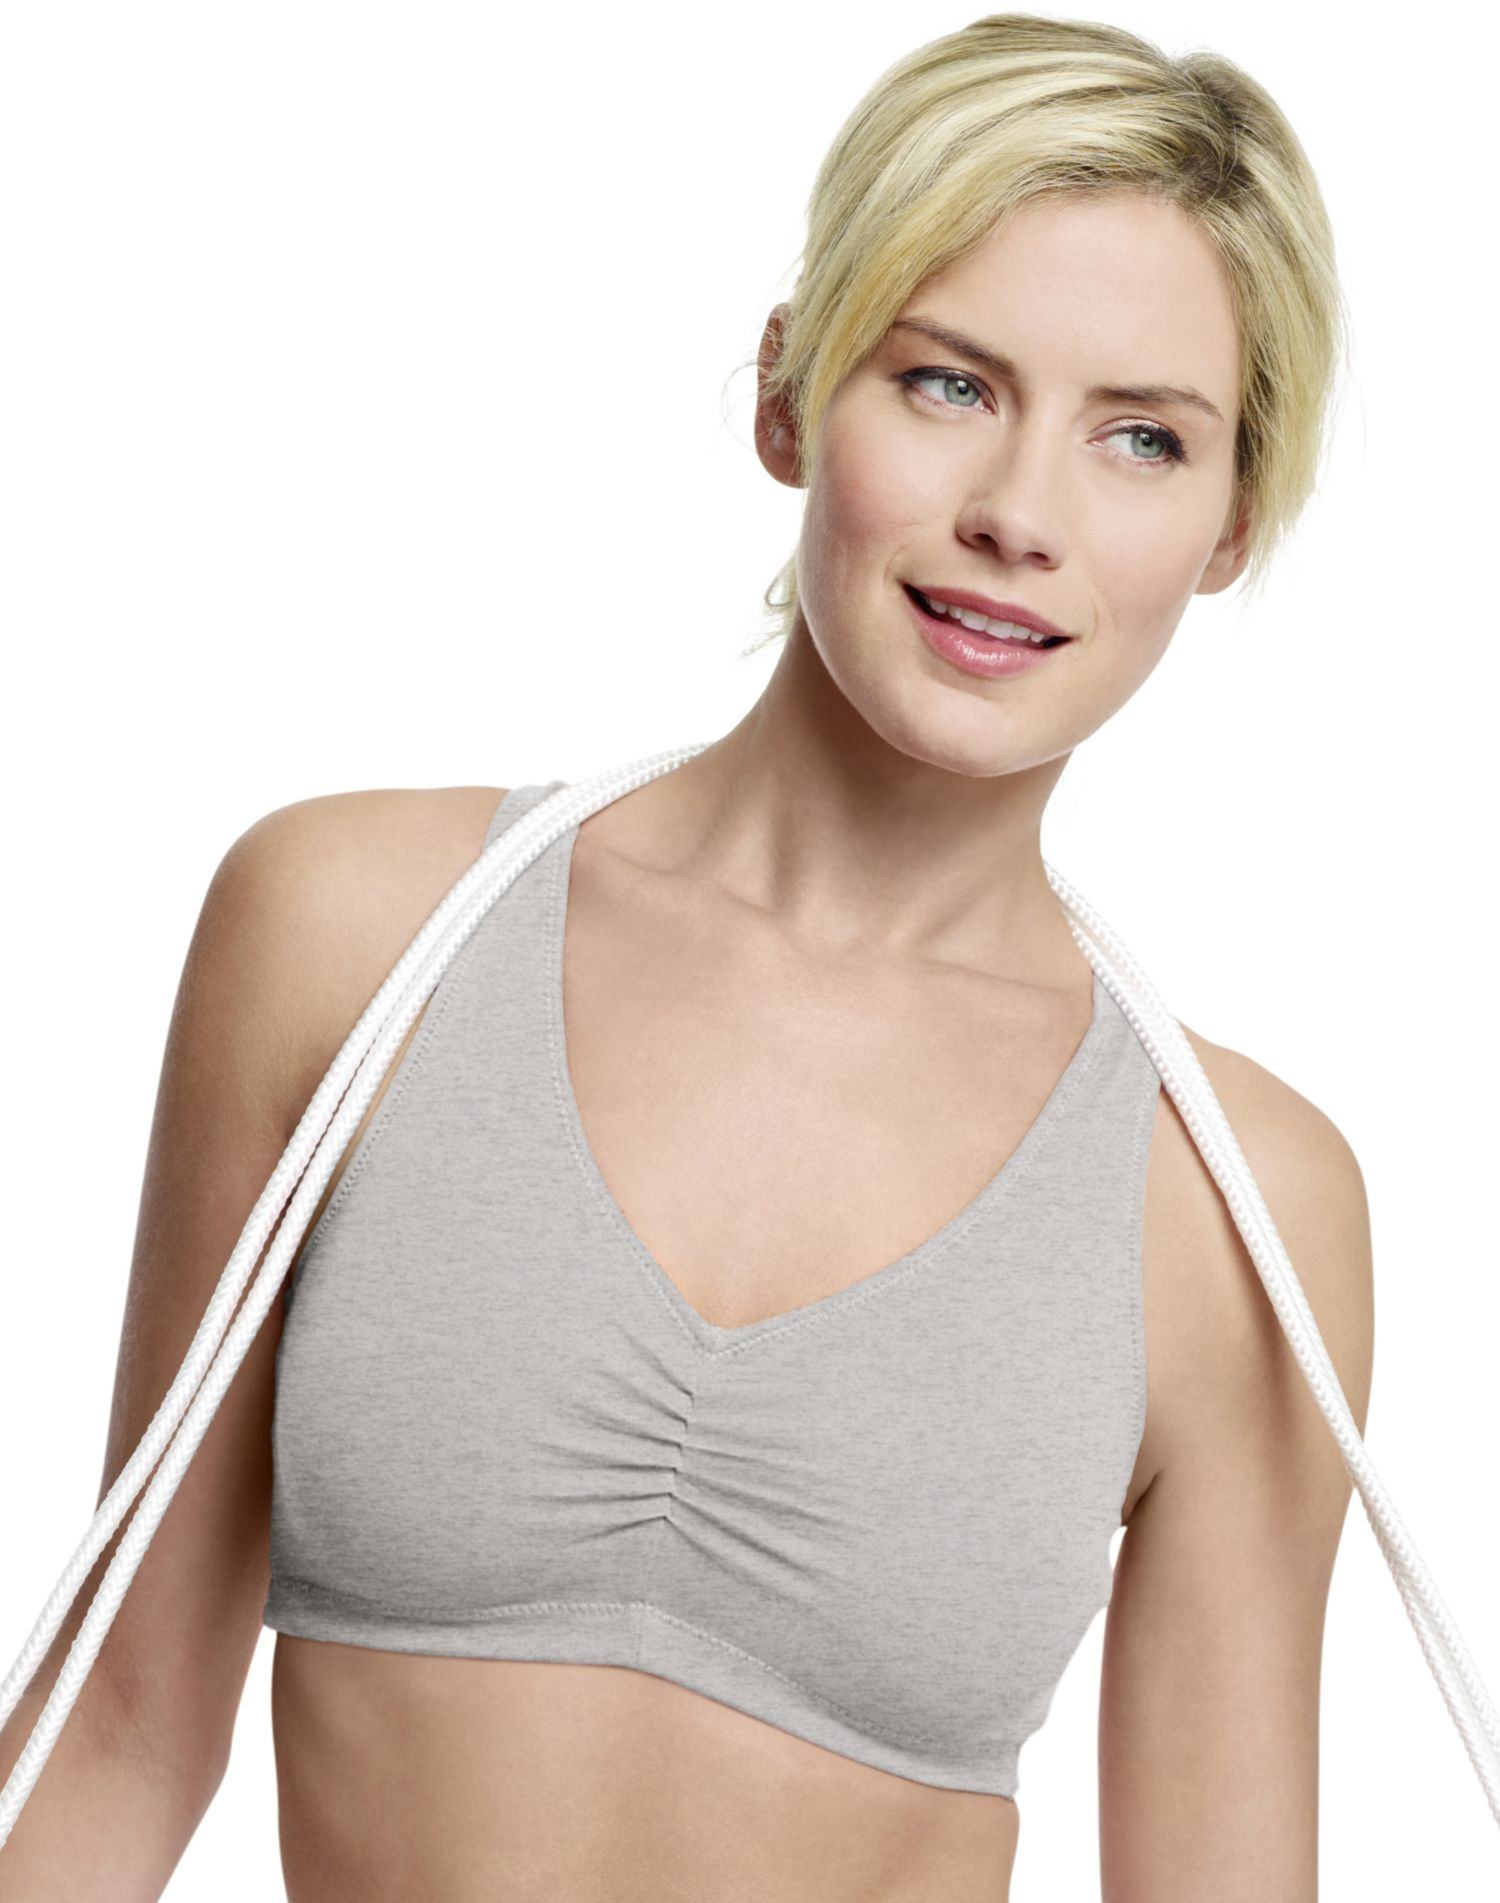 a5179fb6770 Hanes H570 Womens Stretch Cotton Sport Top Size Large